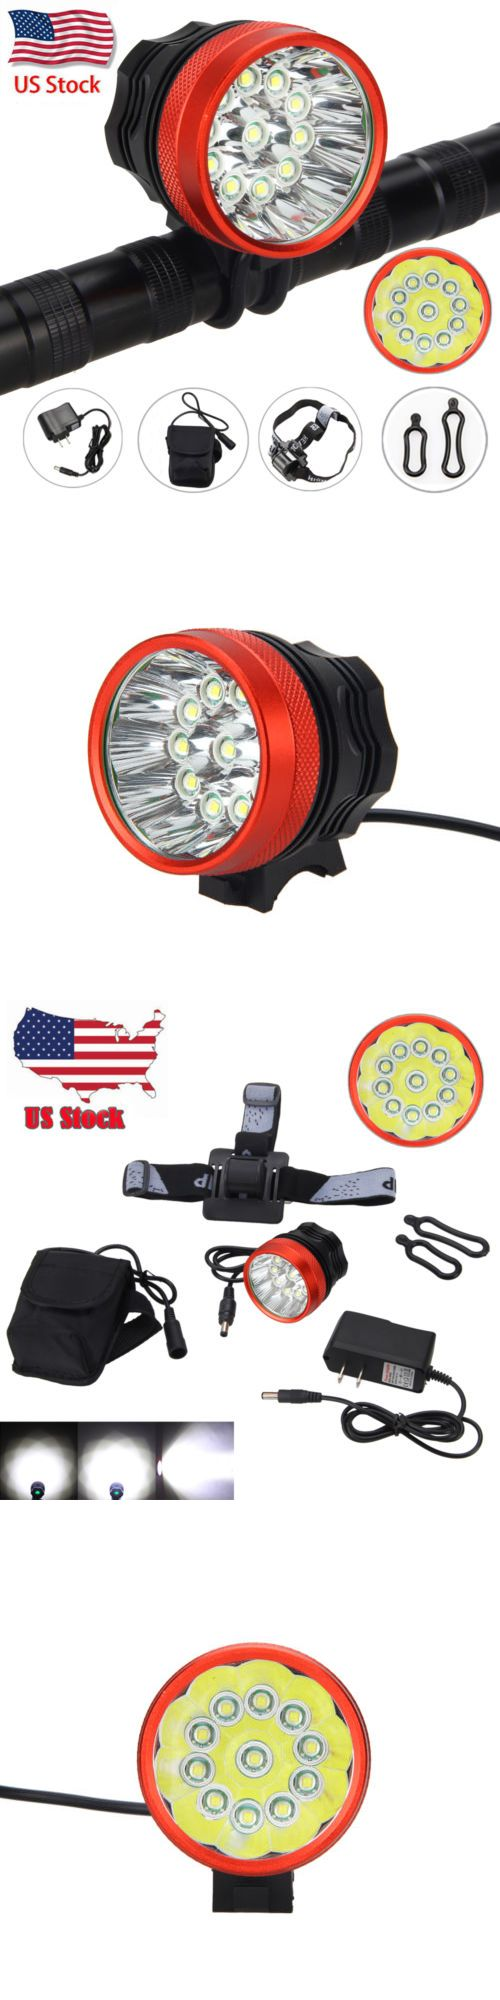 Lights and Reflectors 22689: Rechargeable 30000Lm 11Xxml T6 Led Bicycle Bike Mtb Light Lamp Headband+12000Mah -> BUY IT NOW ONLY: $32.99 on eBay!